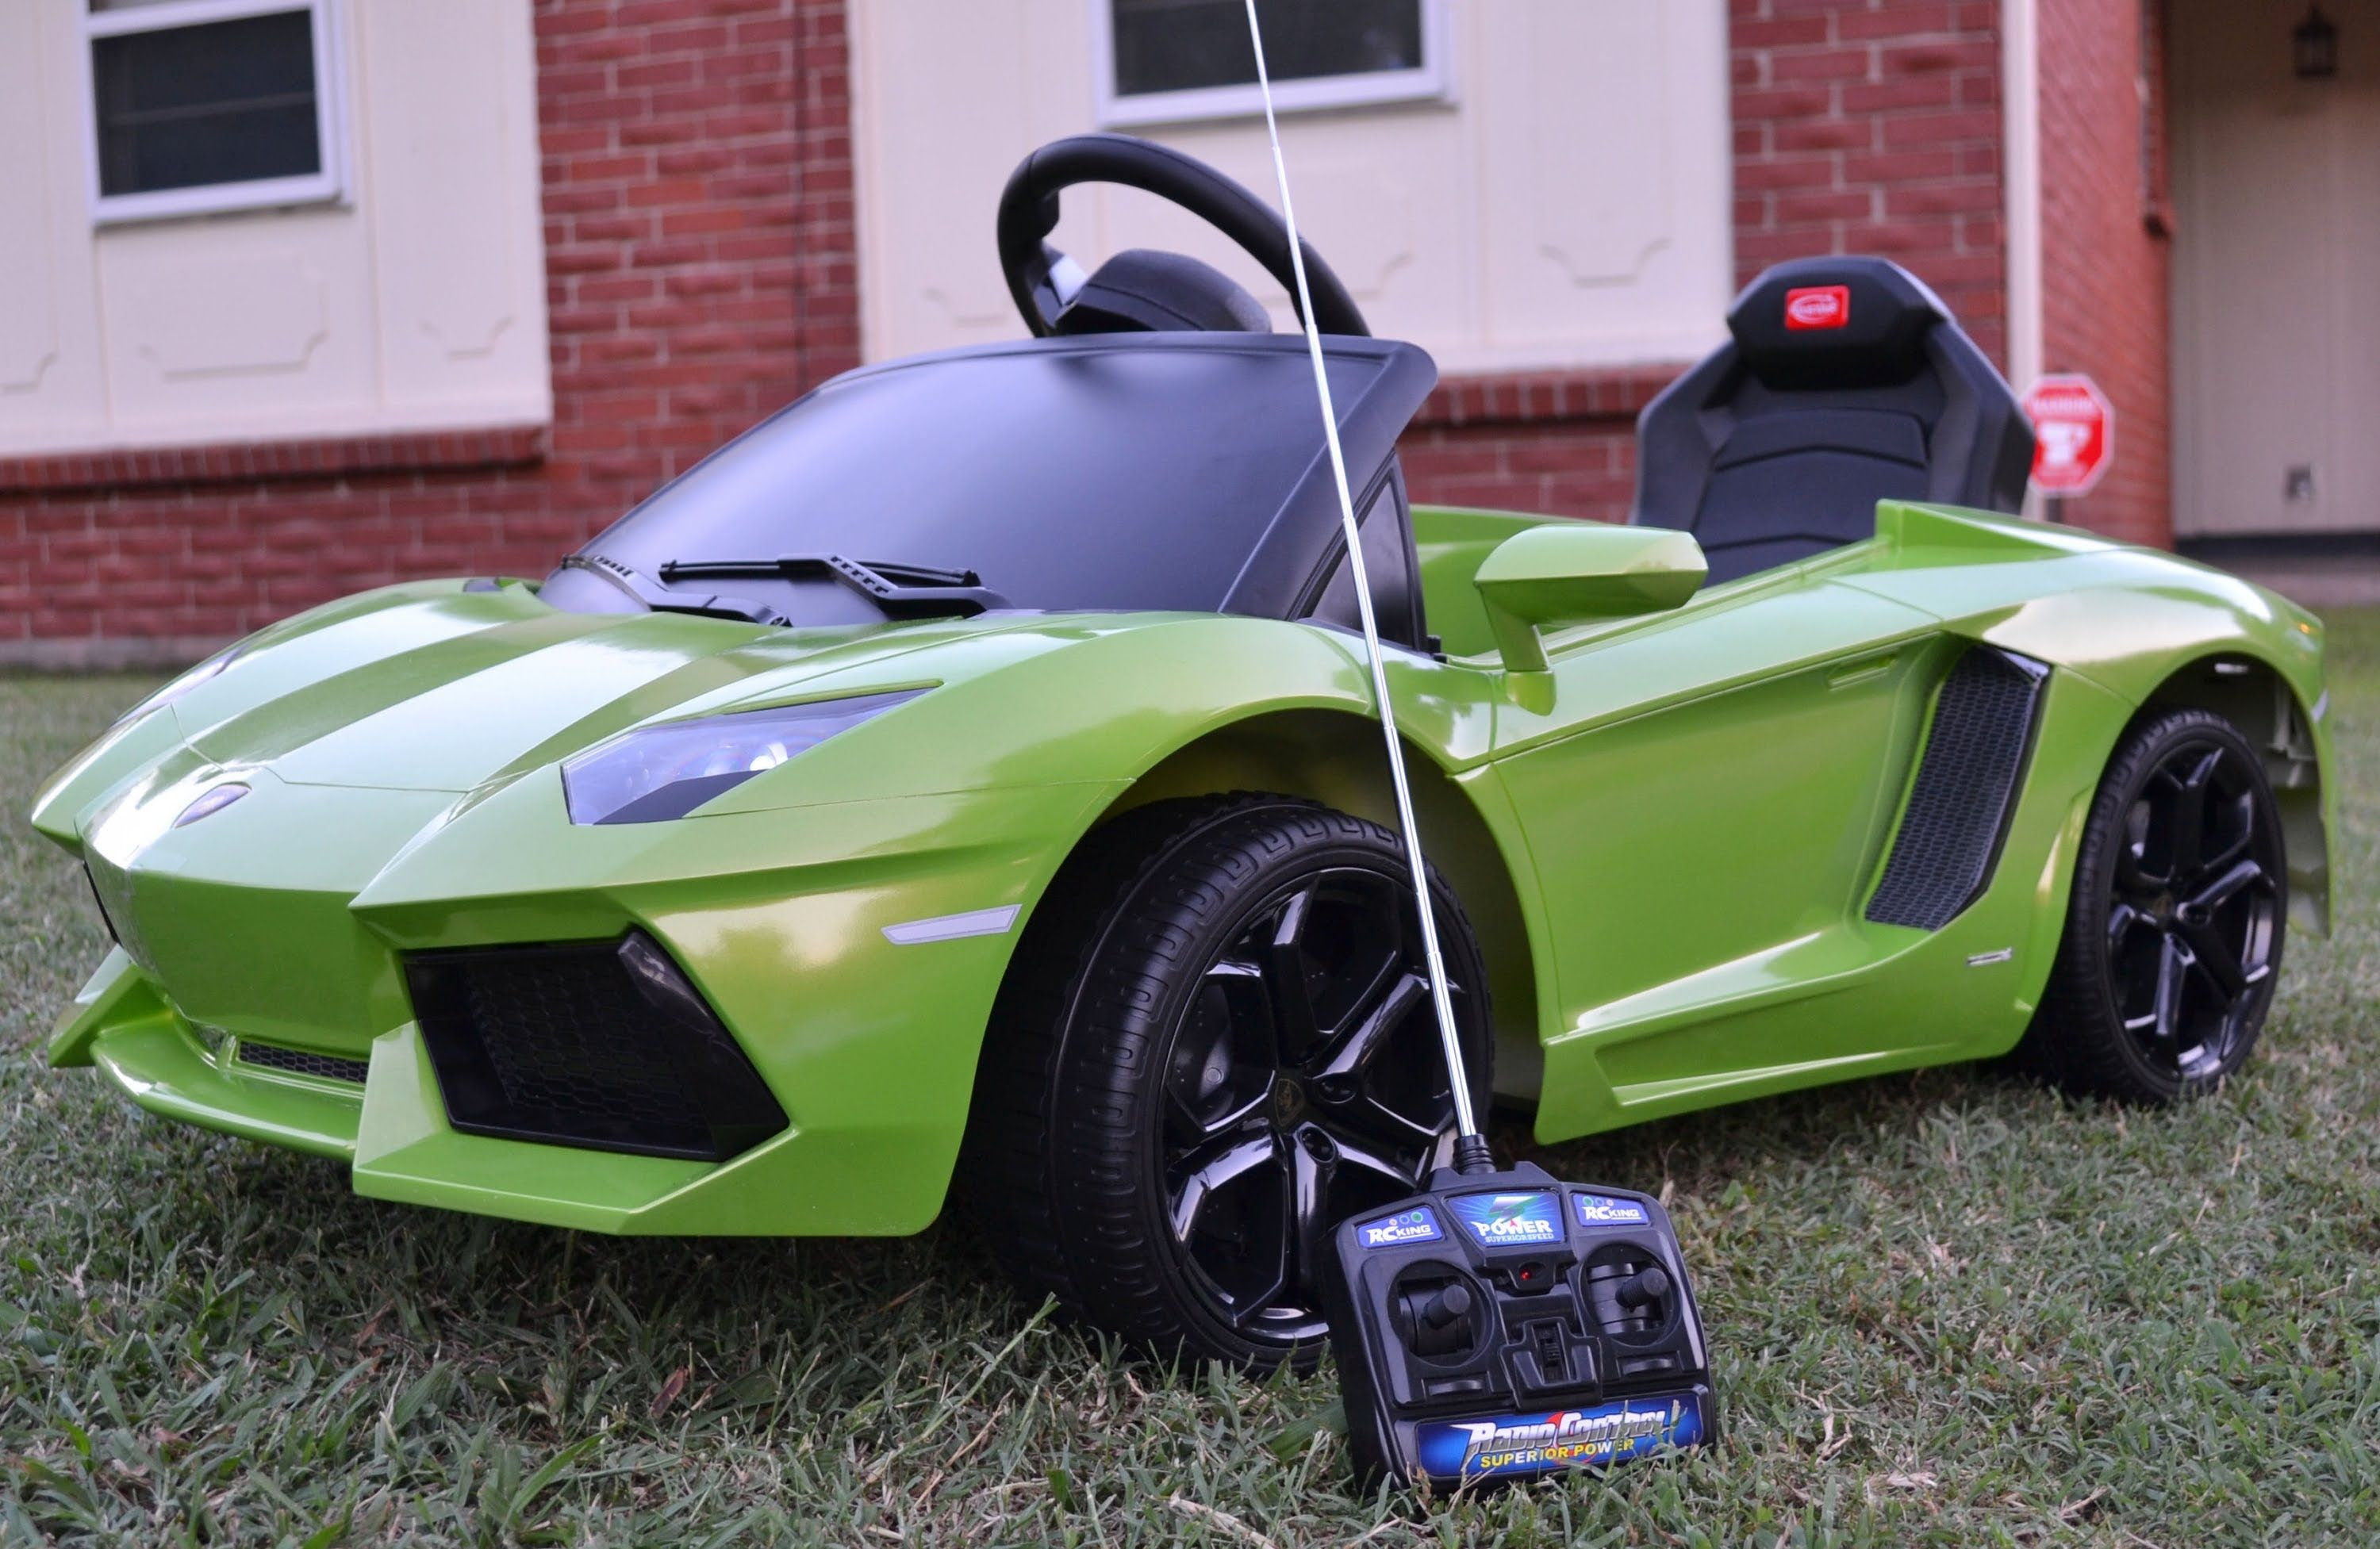 Ride On Toys For Older Kids >> Are There Battery Operated Cars For Older Kids Google Search